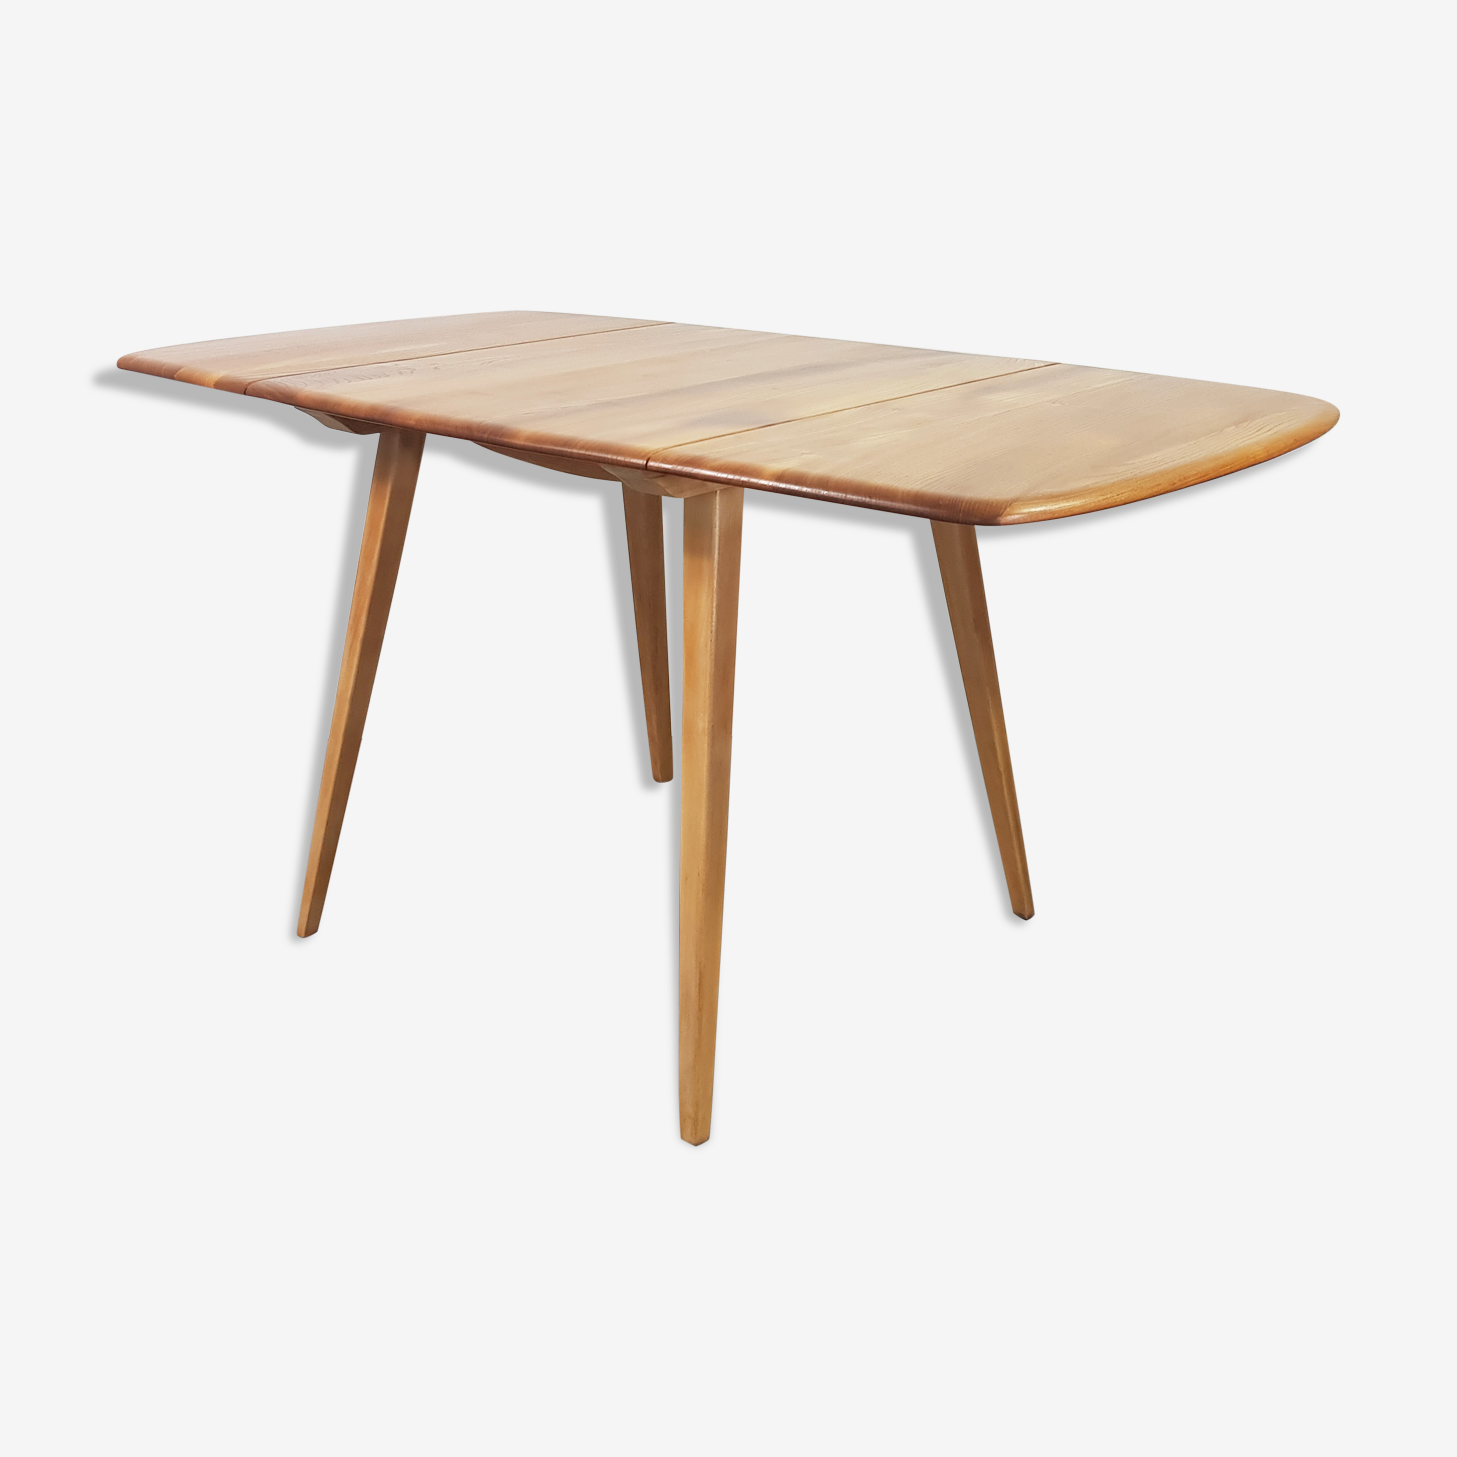 Table by Lucian Ercolani for Ercol, 1960